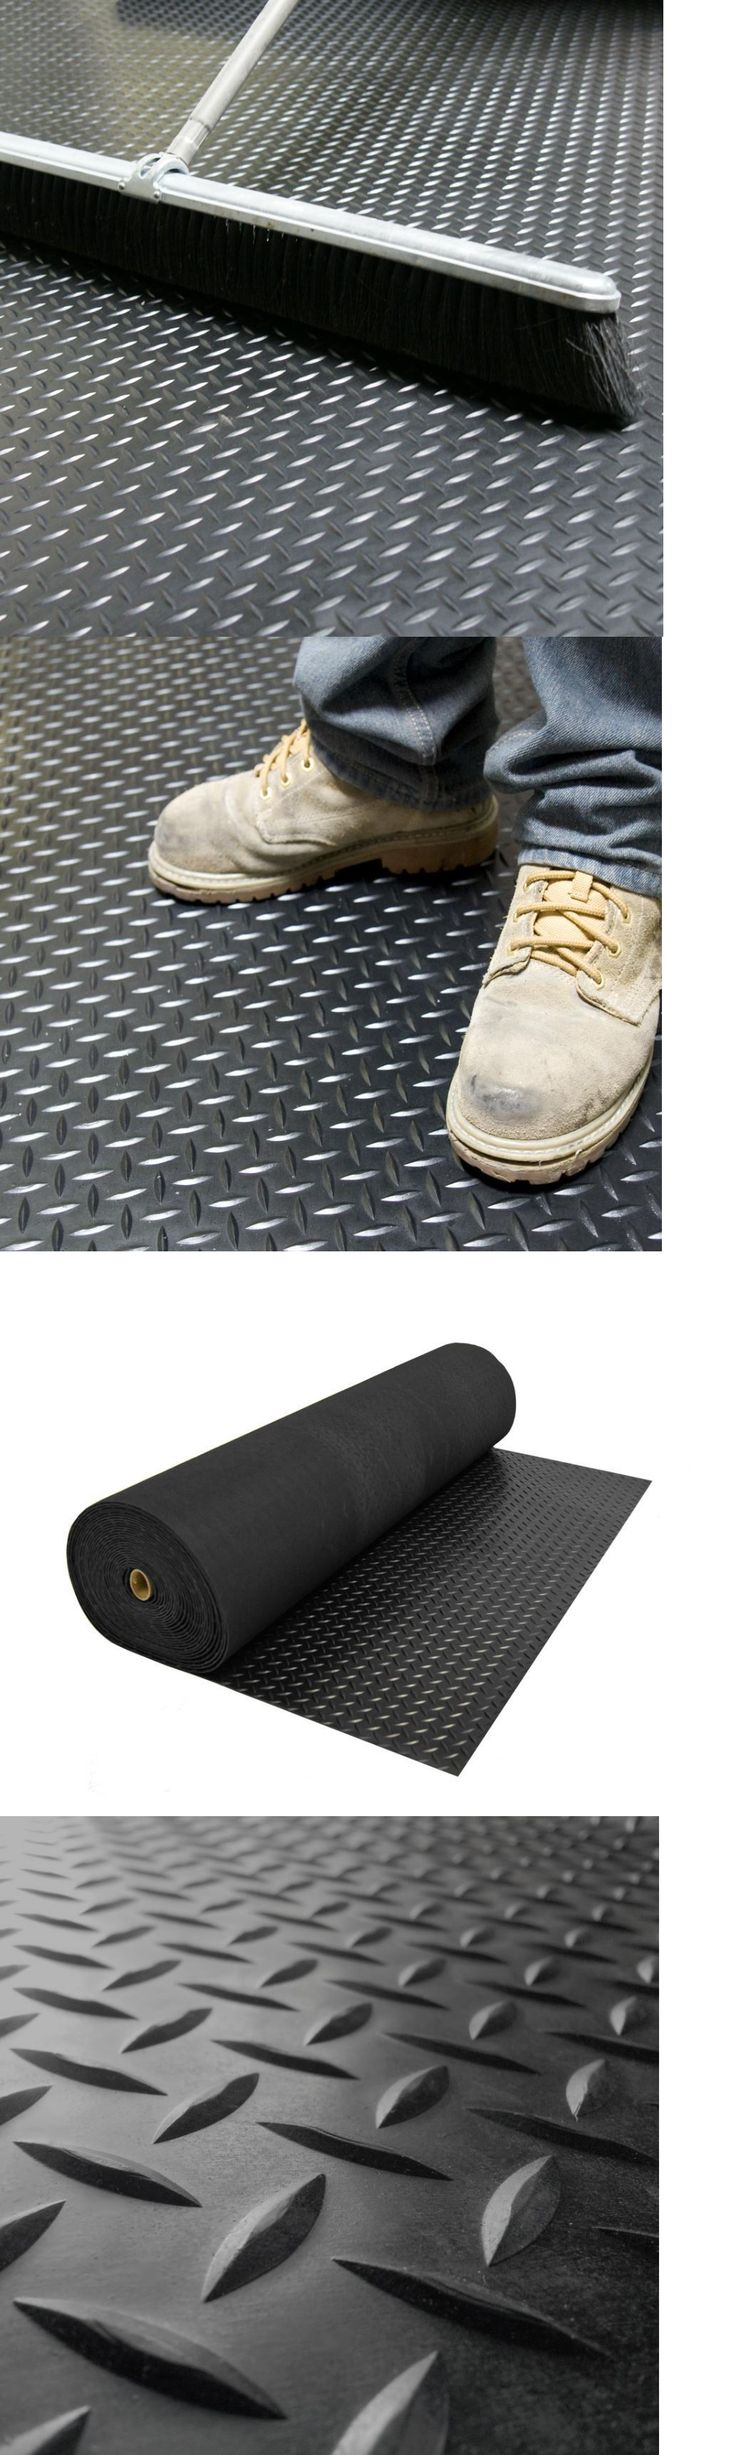 Rubber floor mats for sale - Equipment Mats And Flooring 179806 Garage Floor Protector Rubber Flooring For Home Gym Black Diamond